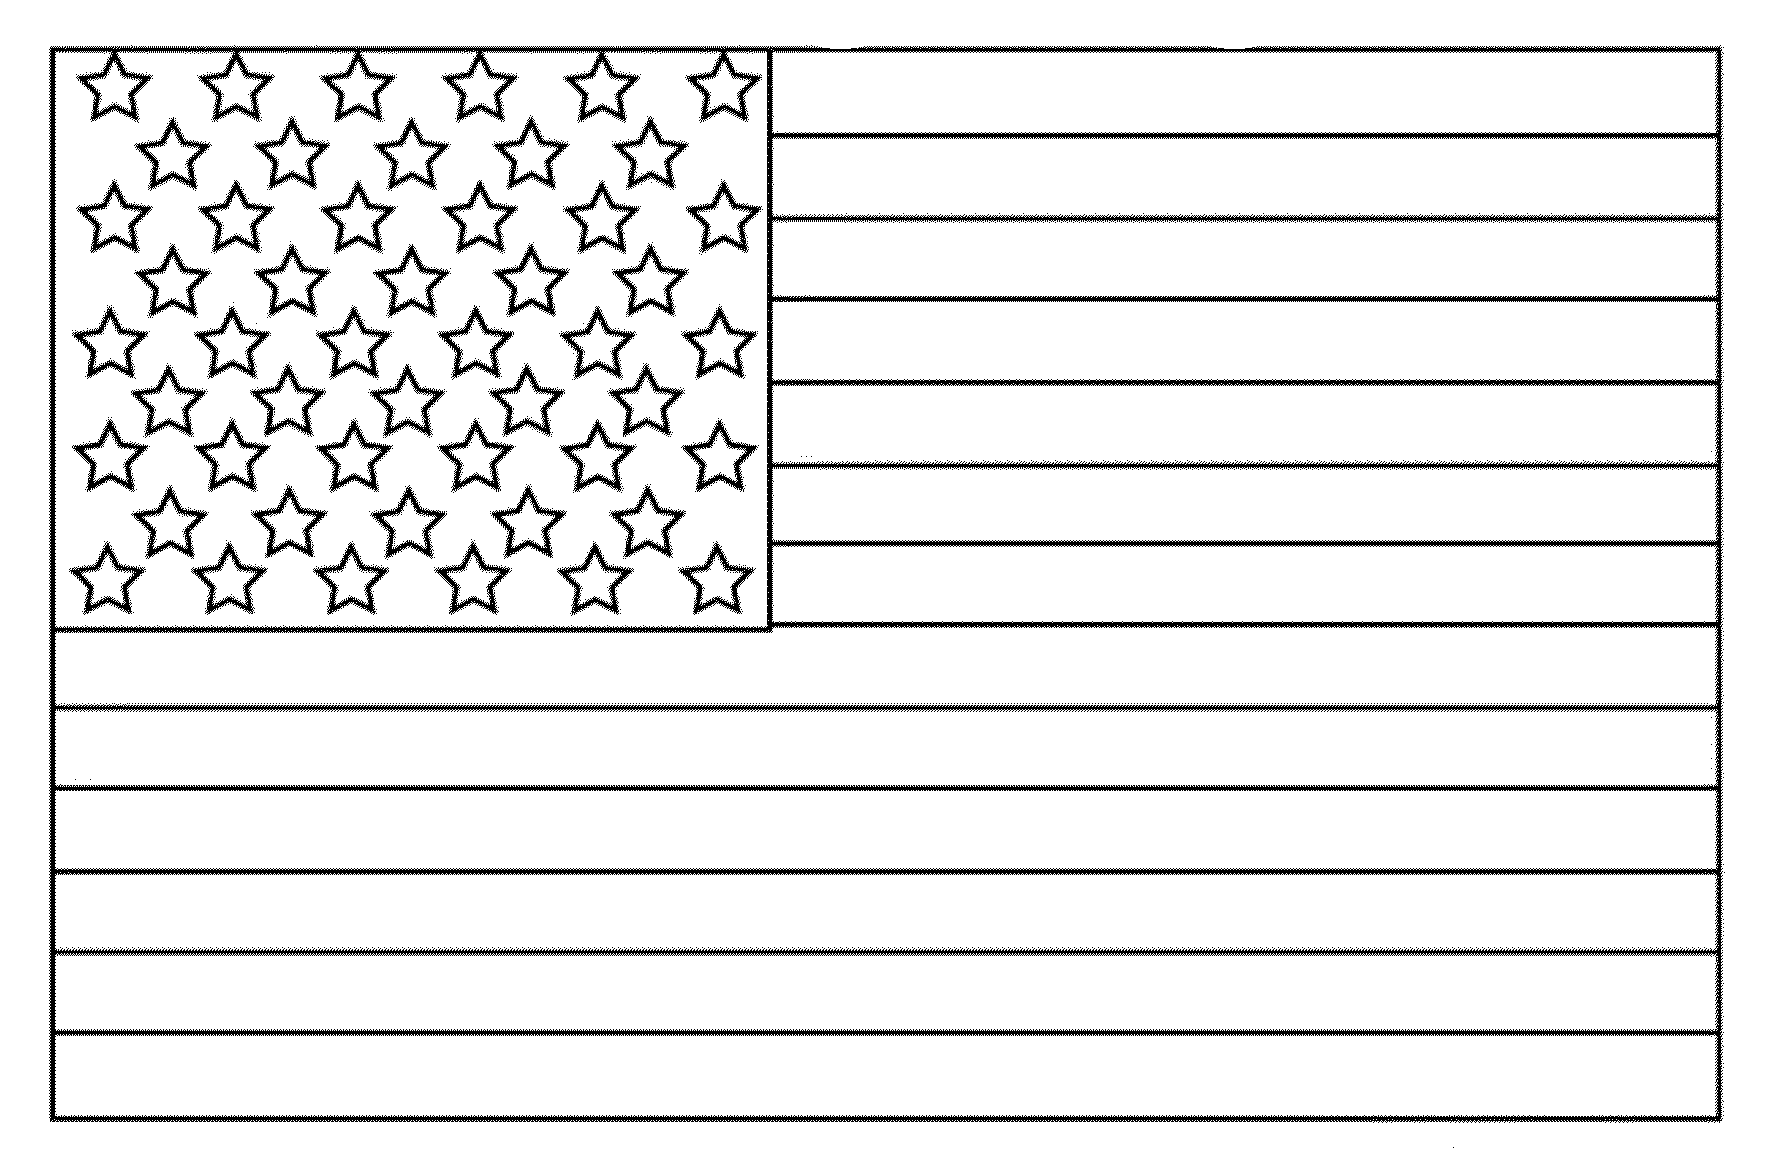 american flag coloring pages for free | American Flag Coloring Page for the Love of the Country